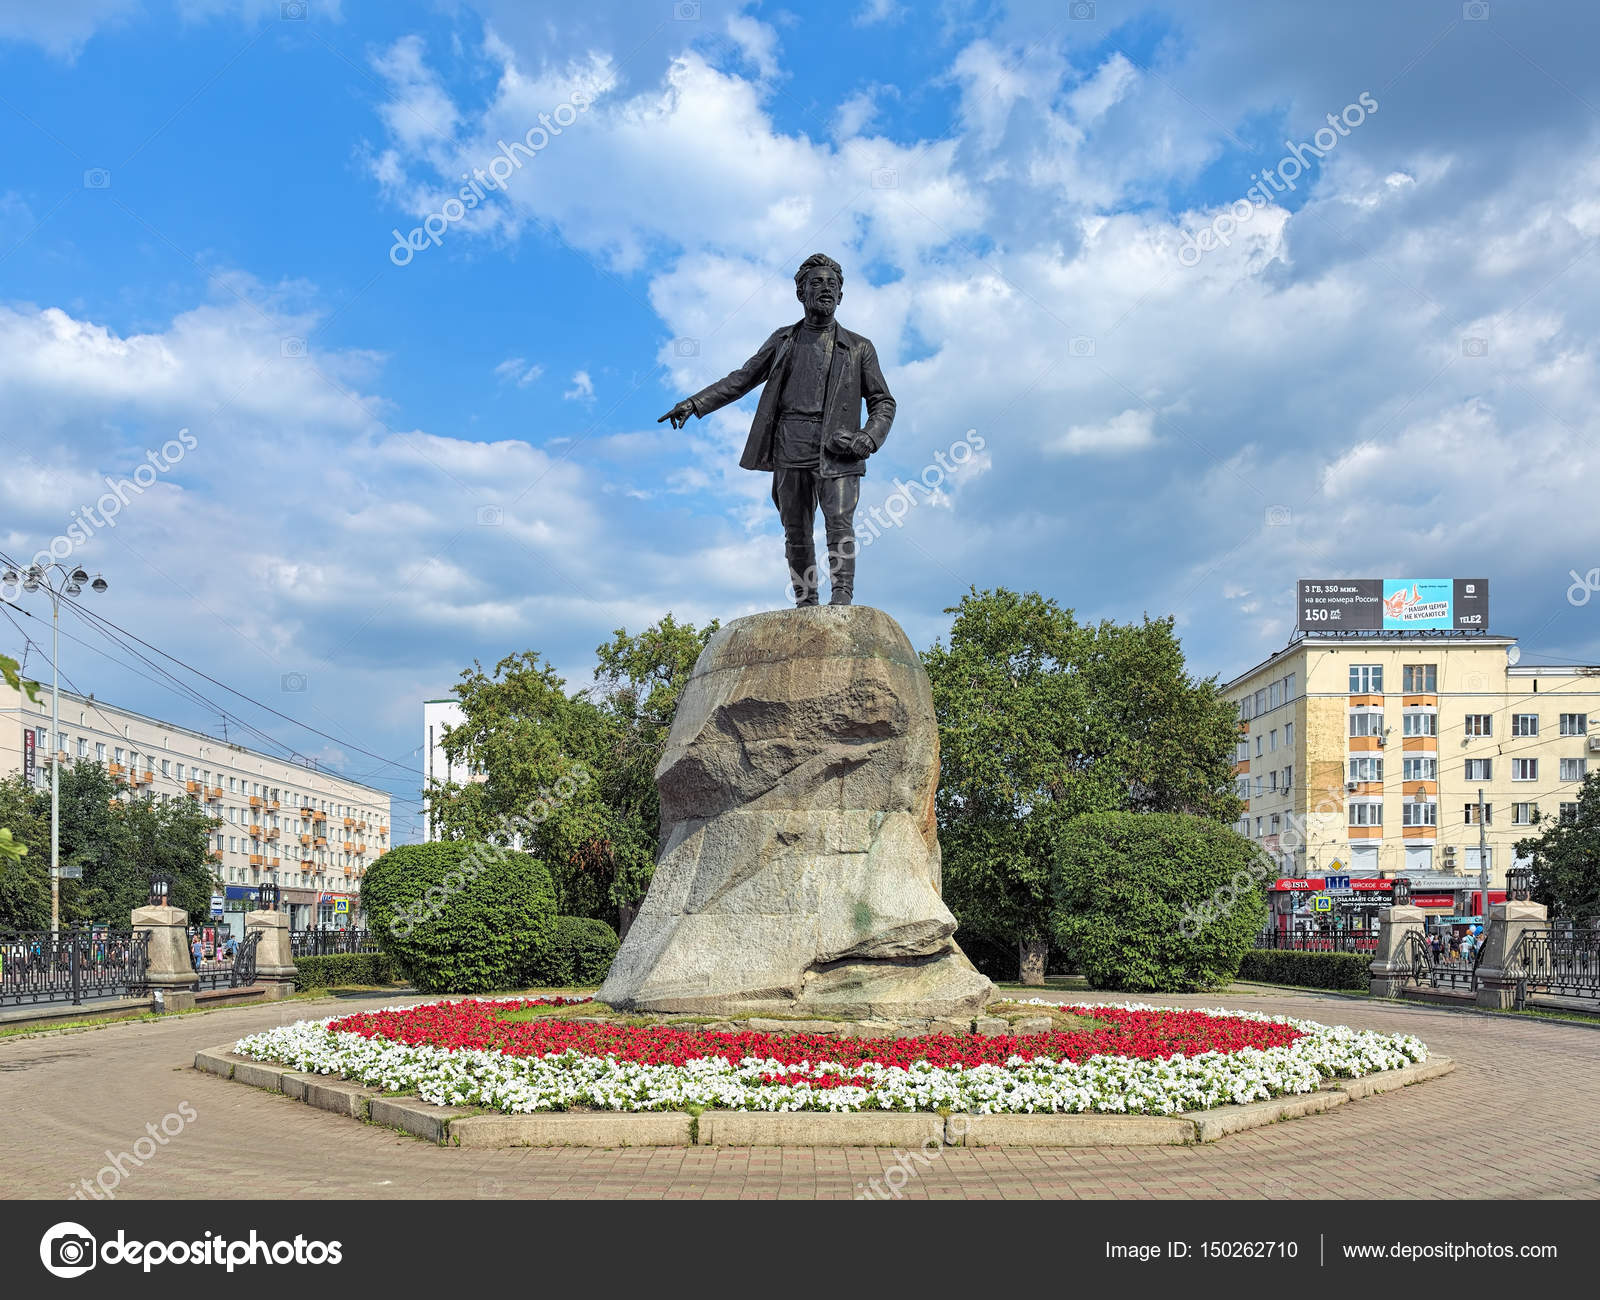 Monument to Yeltsin, desecrated in Yekaterinburg, banned from laundering 24.08.2012 63